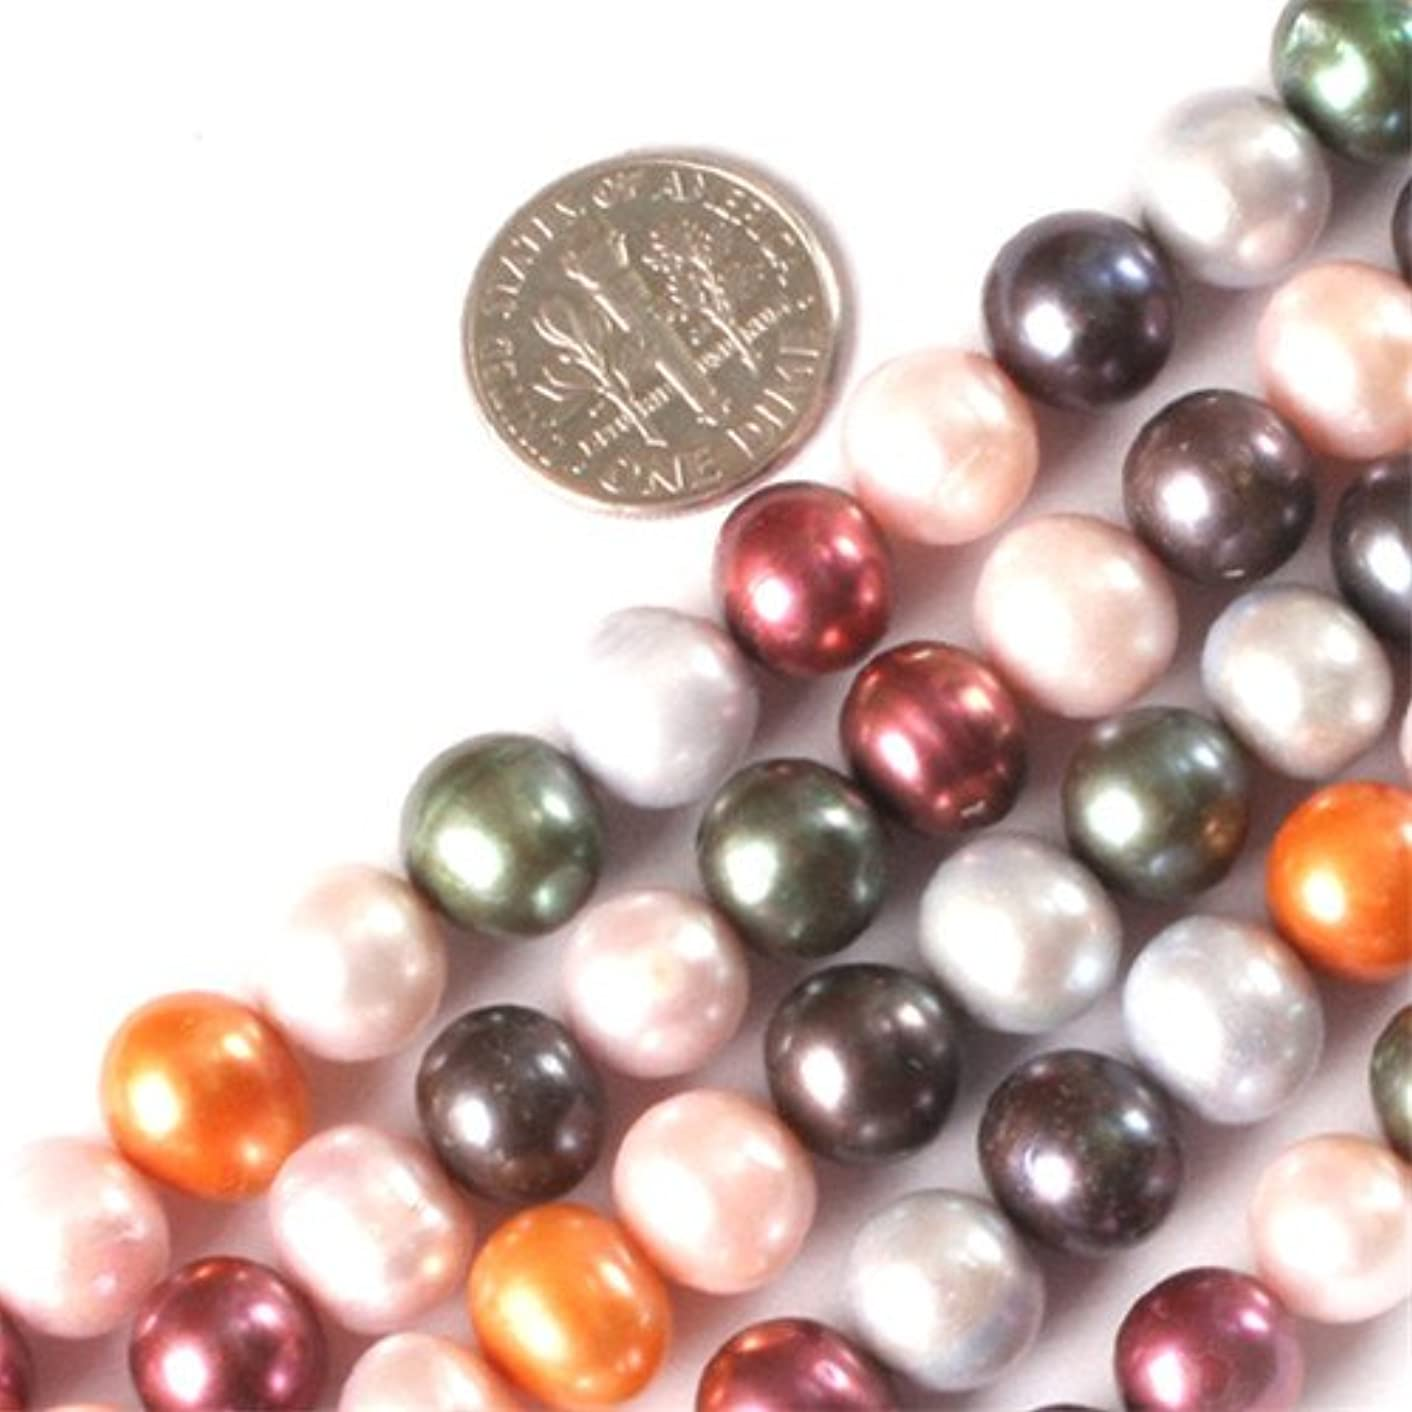 GEM-inside Pearl Gemstone Loose Beads 8-9mm Round Mixed Color Natural Cultured Dyed Energy Stone Power Beads For Jewelry Making 15